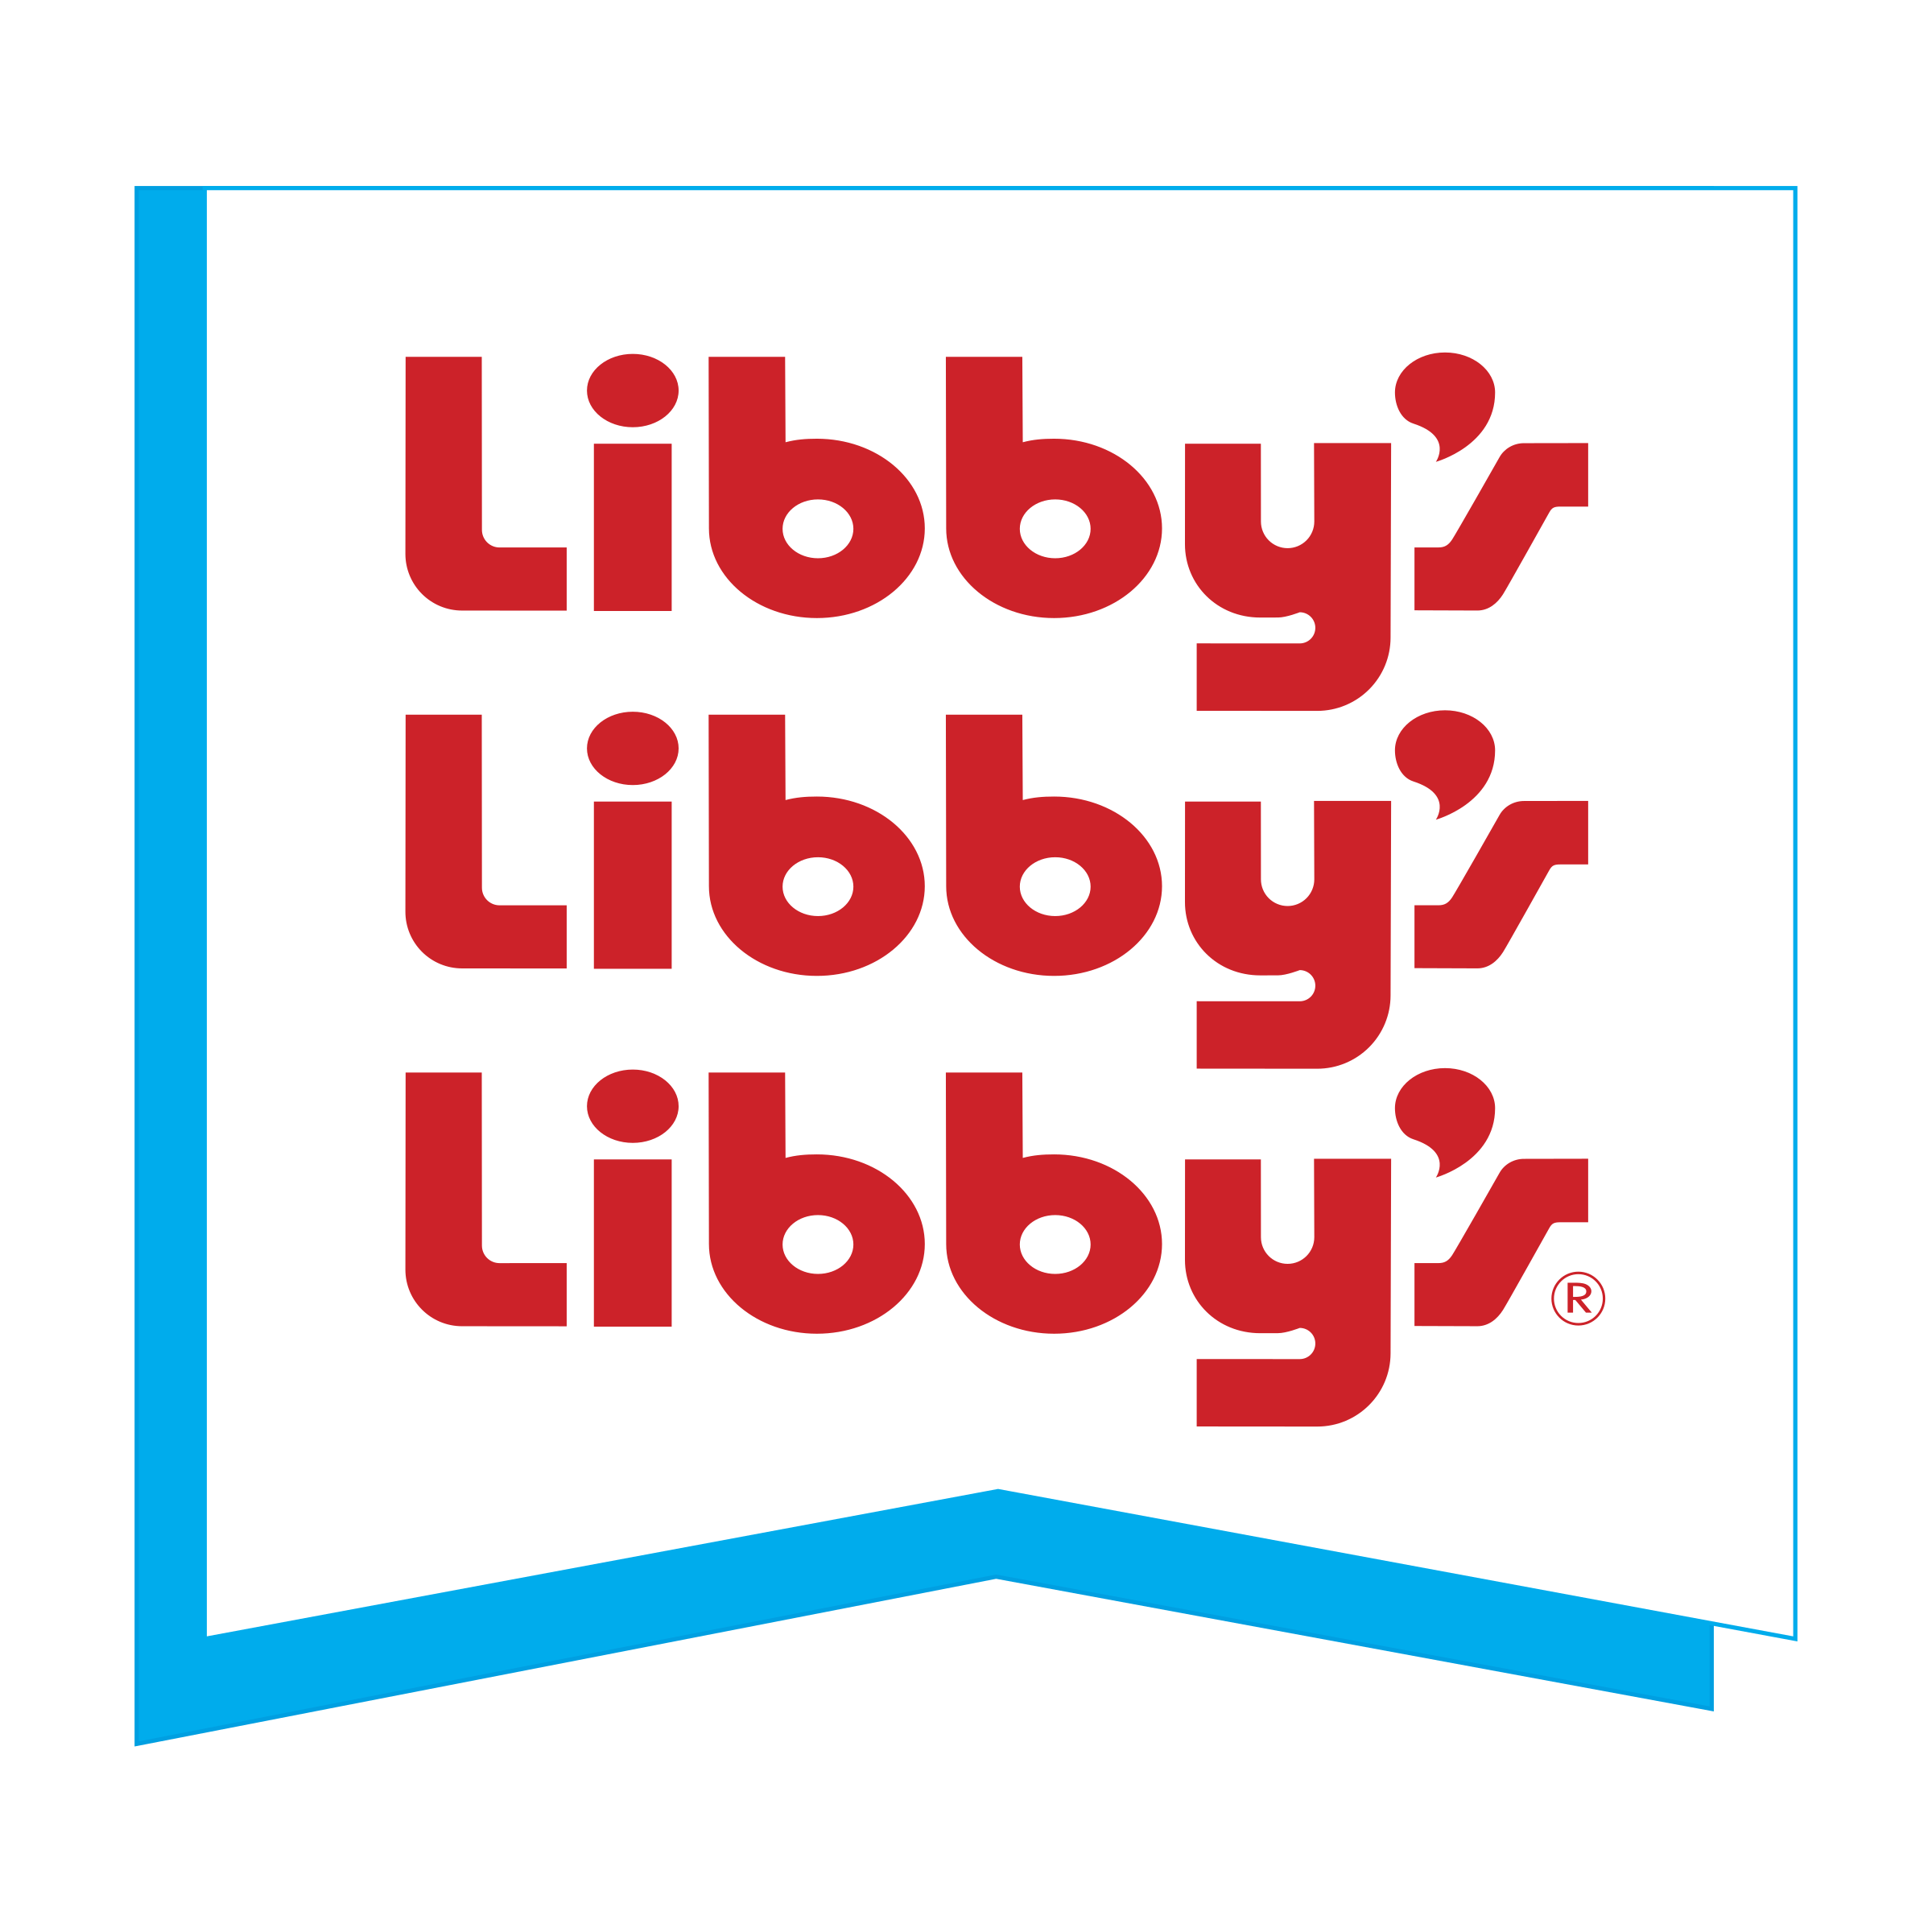 Libbys Png - Libby's Logo PNG Transparent & SVG Vector - Freebie Supply